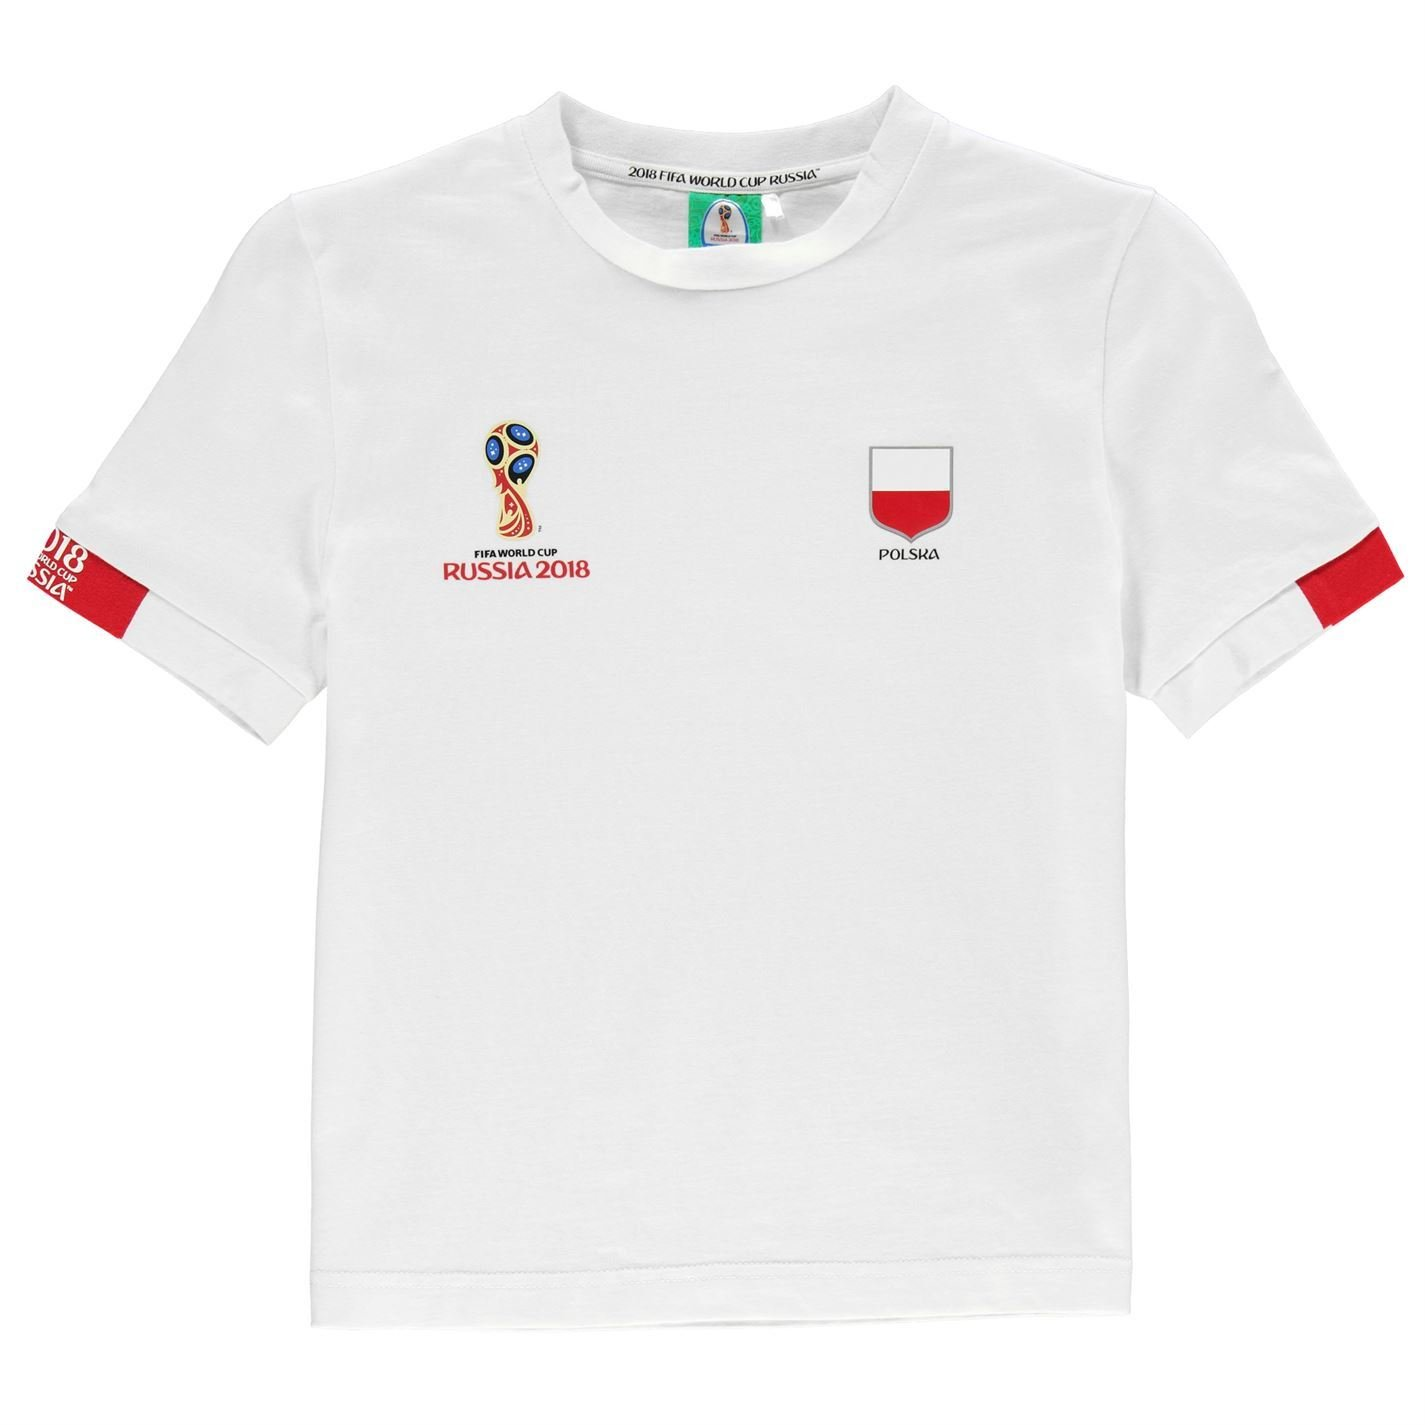 6766e5f01ea FIFA World Cup 2018 Poland Core T-Shirt Juniors White Football Soccer Top  Shirt 11-12 Years (Large Boys): Amazon.co.uk: Sports & Outdoors